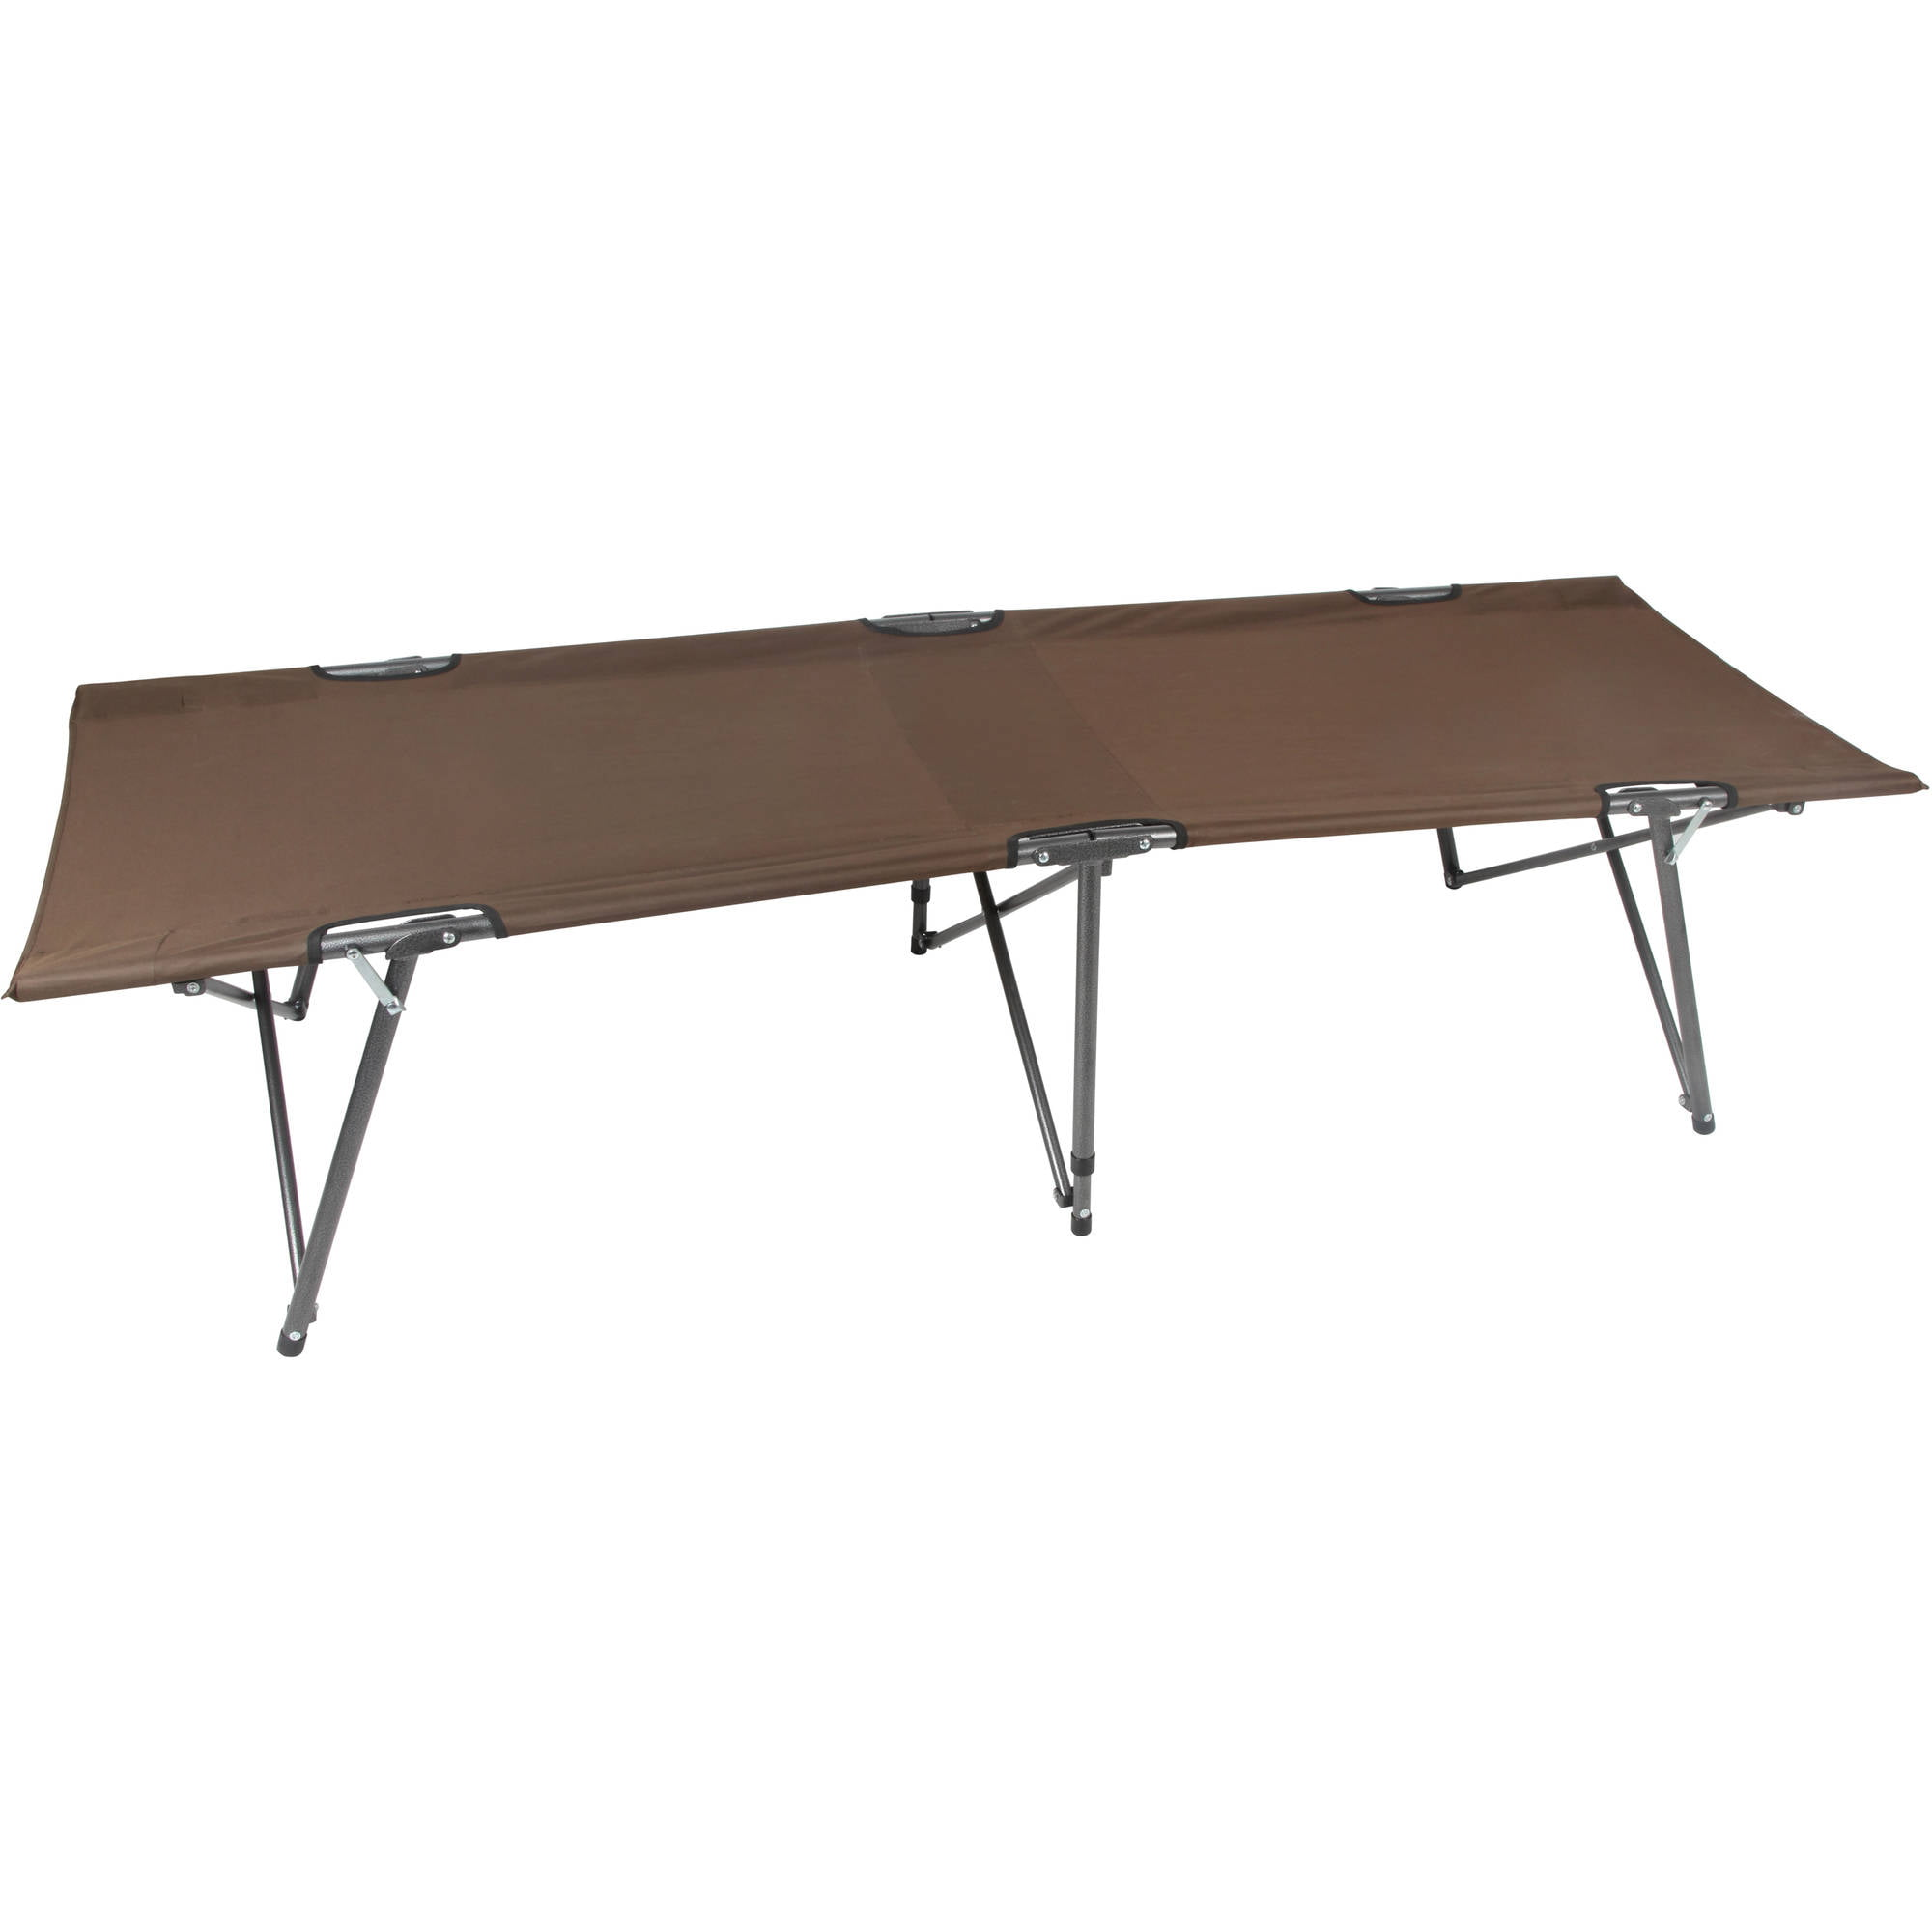 Ozark Trail Basic Comfort Folding Cot by WESTFIELD OUTDOOR INC